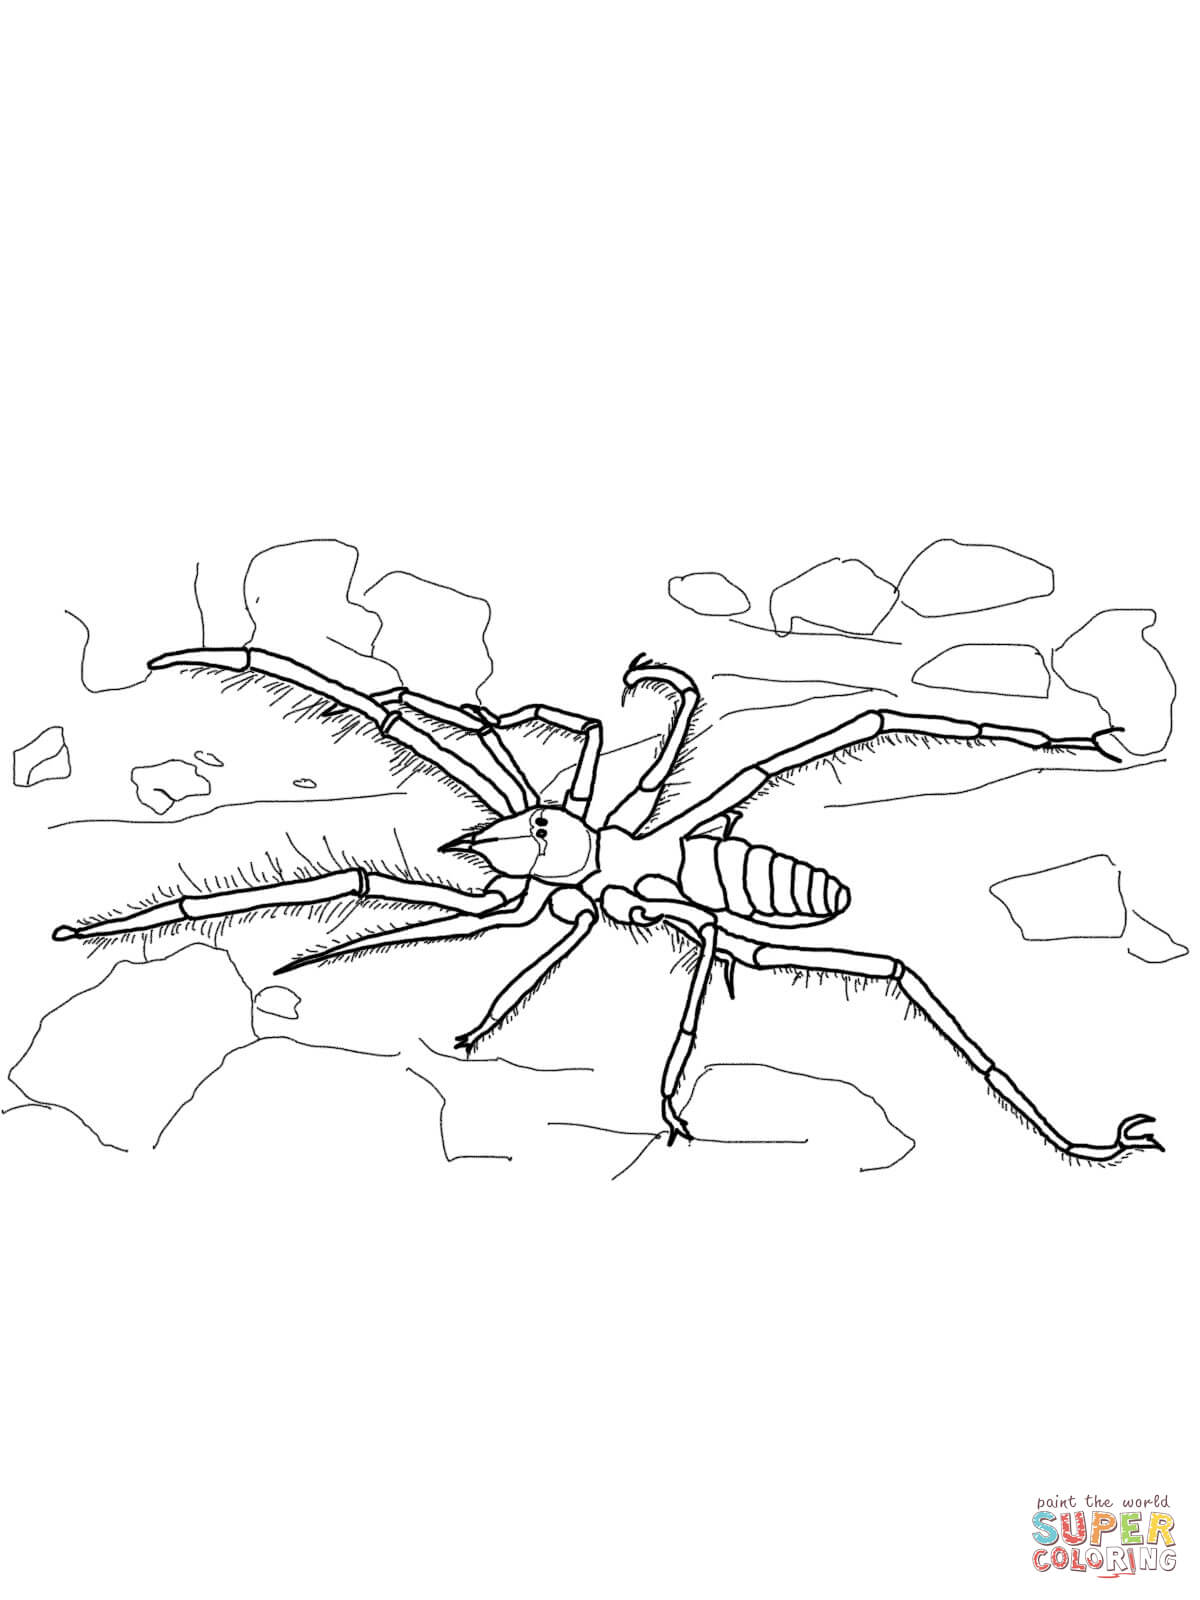 Spiders coloring pages | Free Coloring Pages